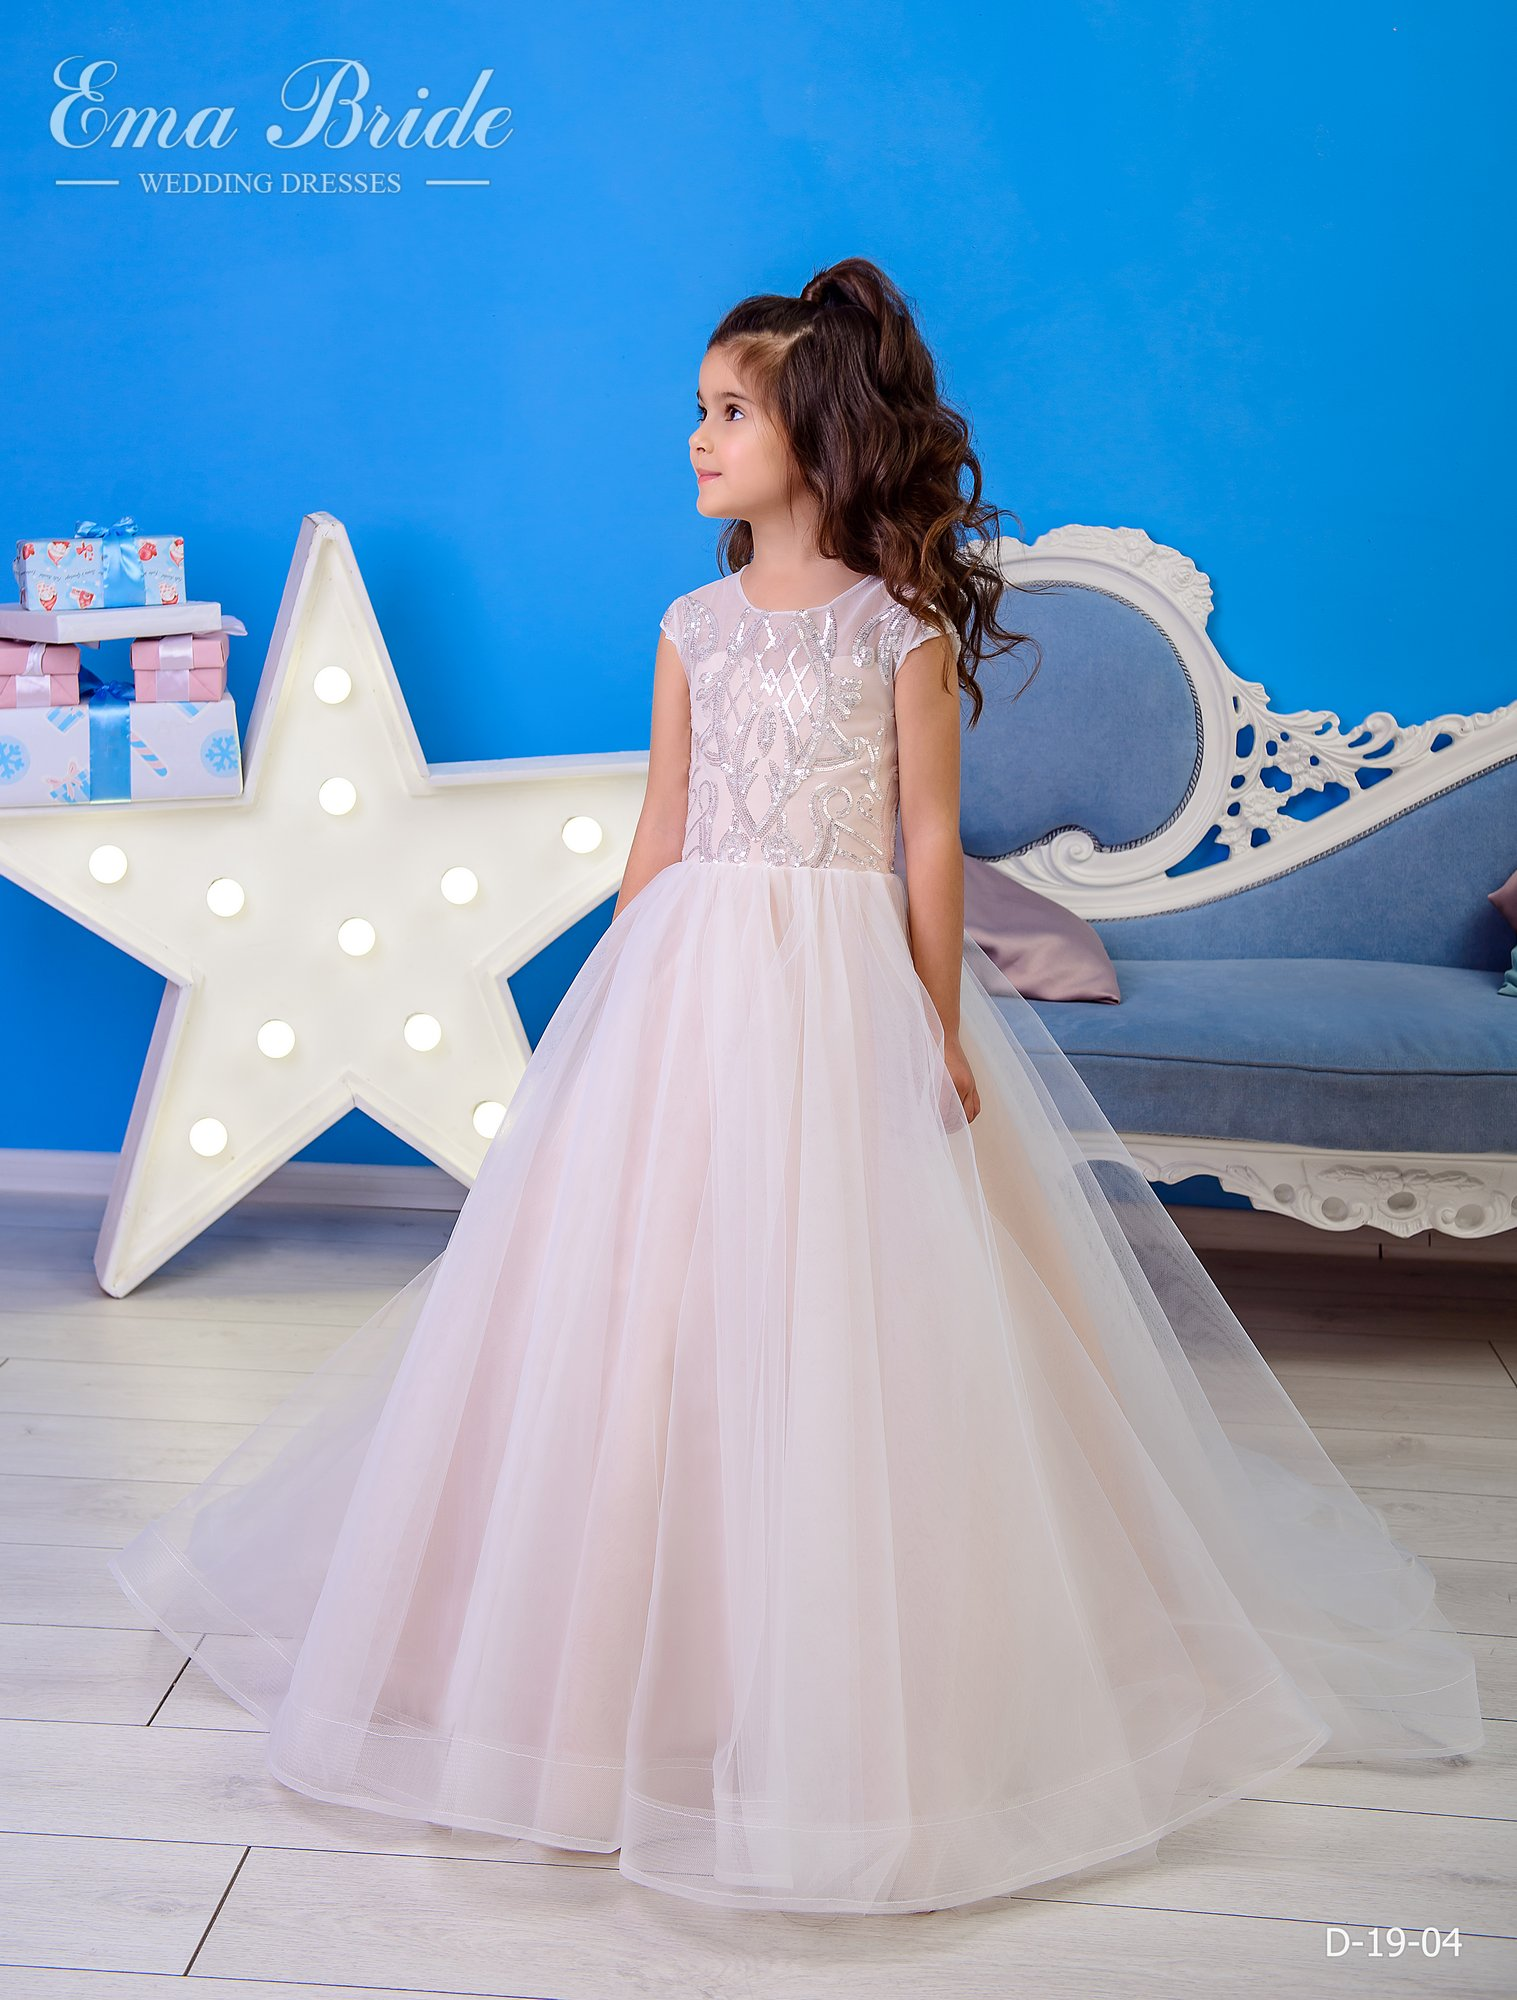 Children's dress by EmaBride D-19-04 2019